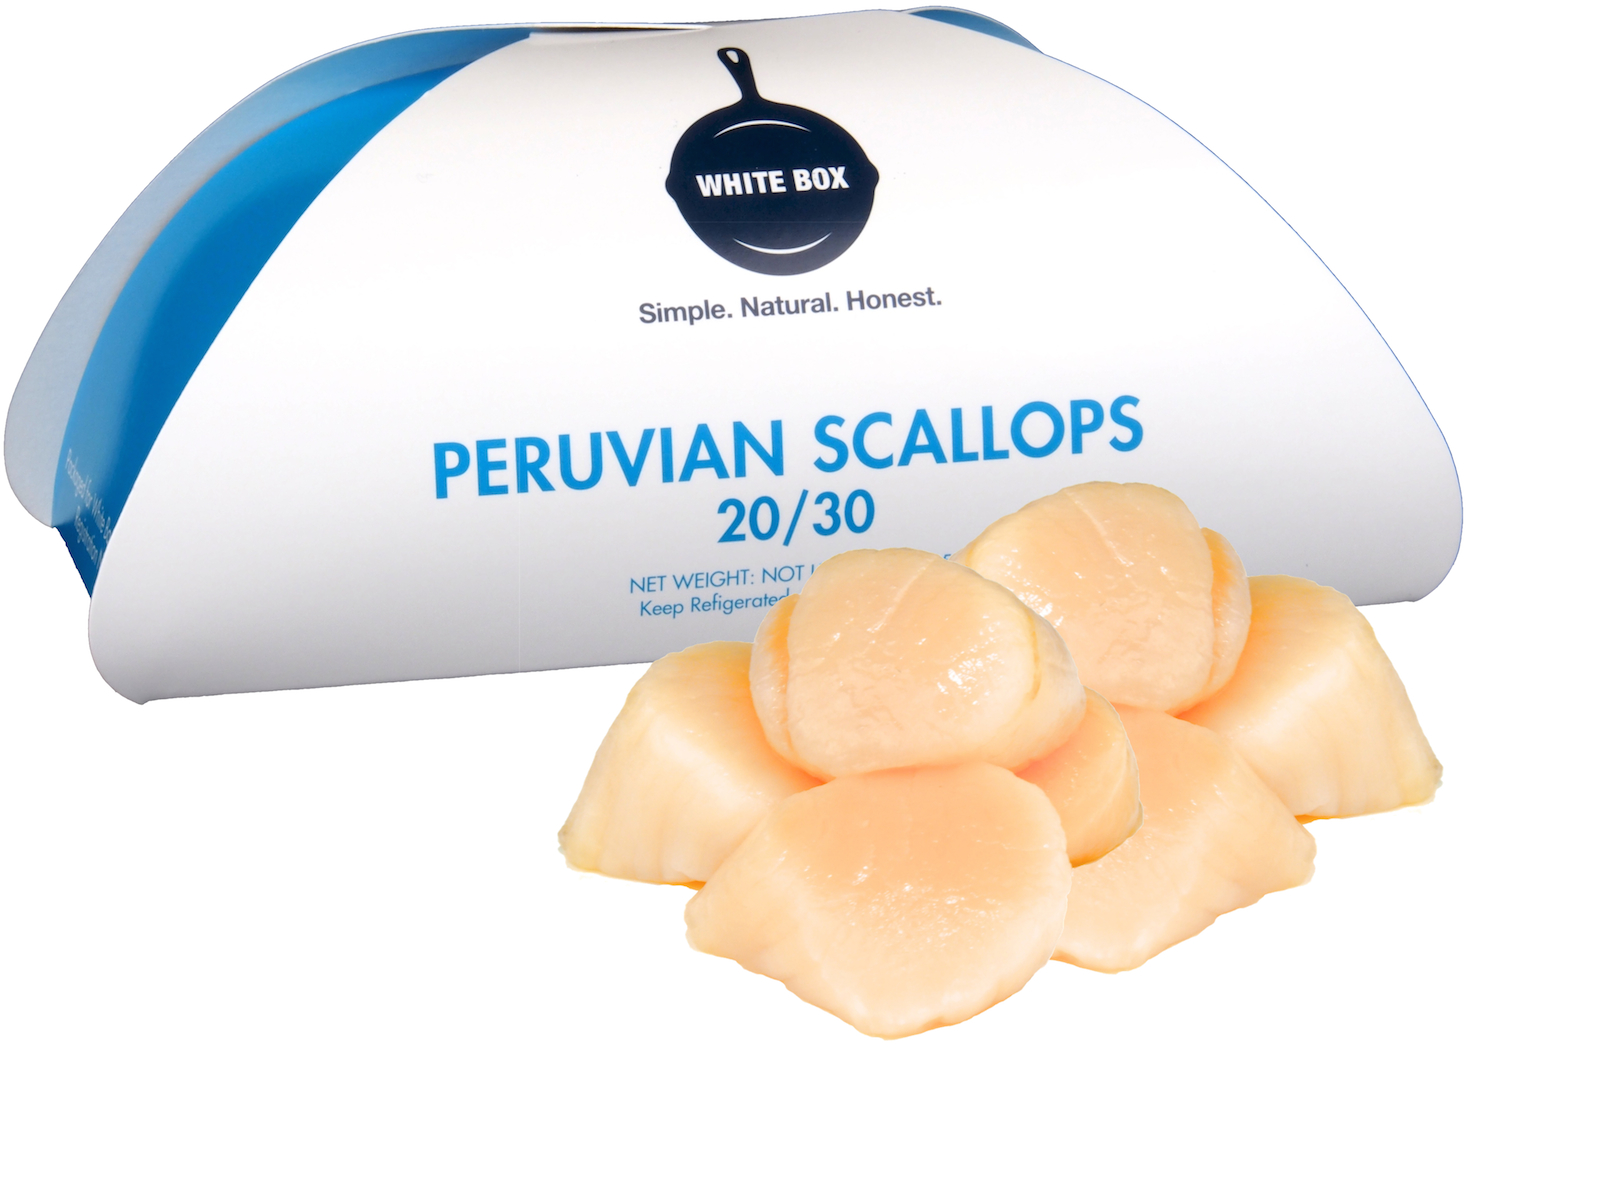 Peruvian Scallops with Box.jpg